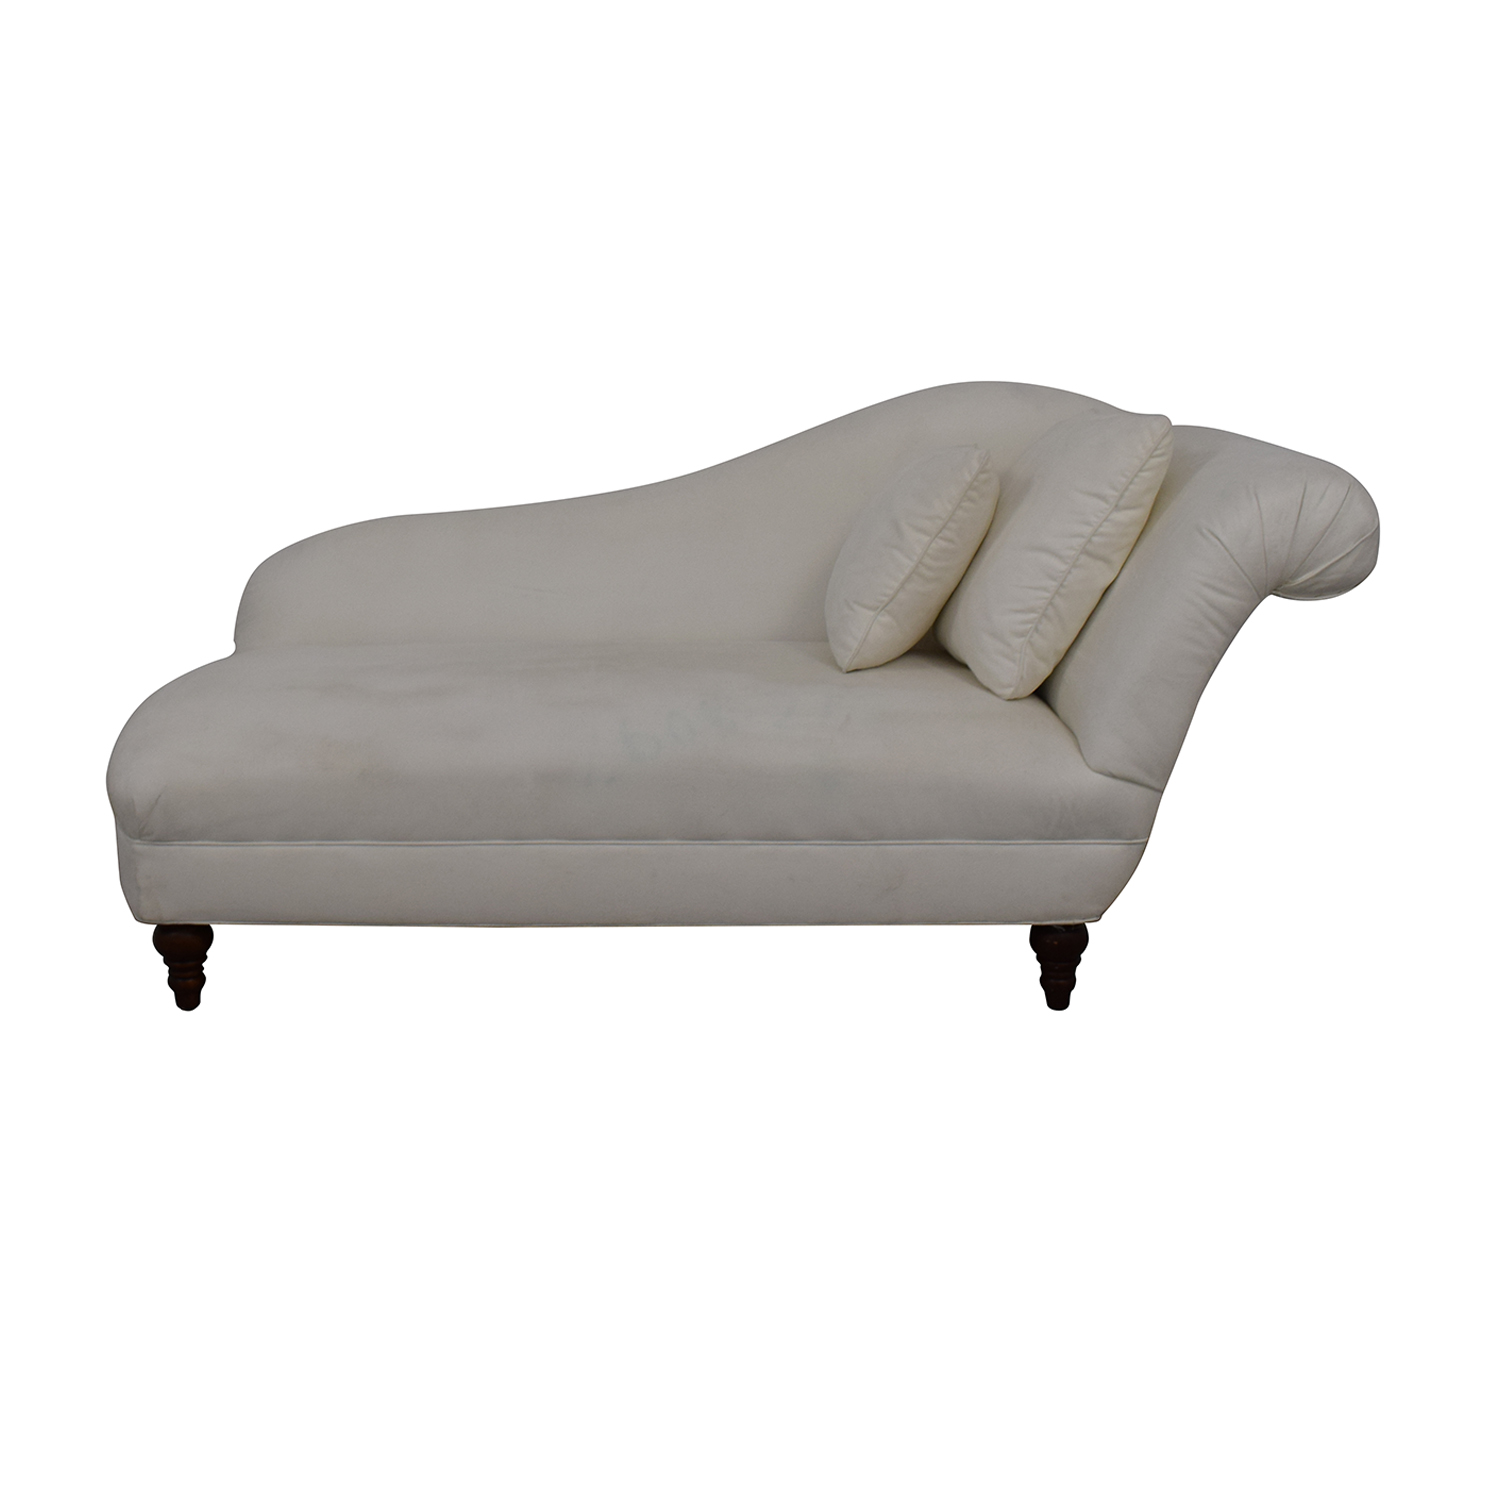 buy Fairfield Chair Company Living Room White Chaise Fairfield Chair Company